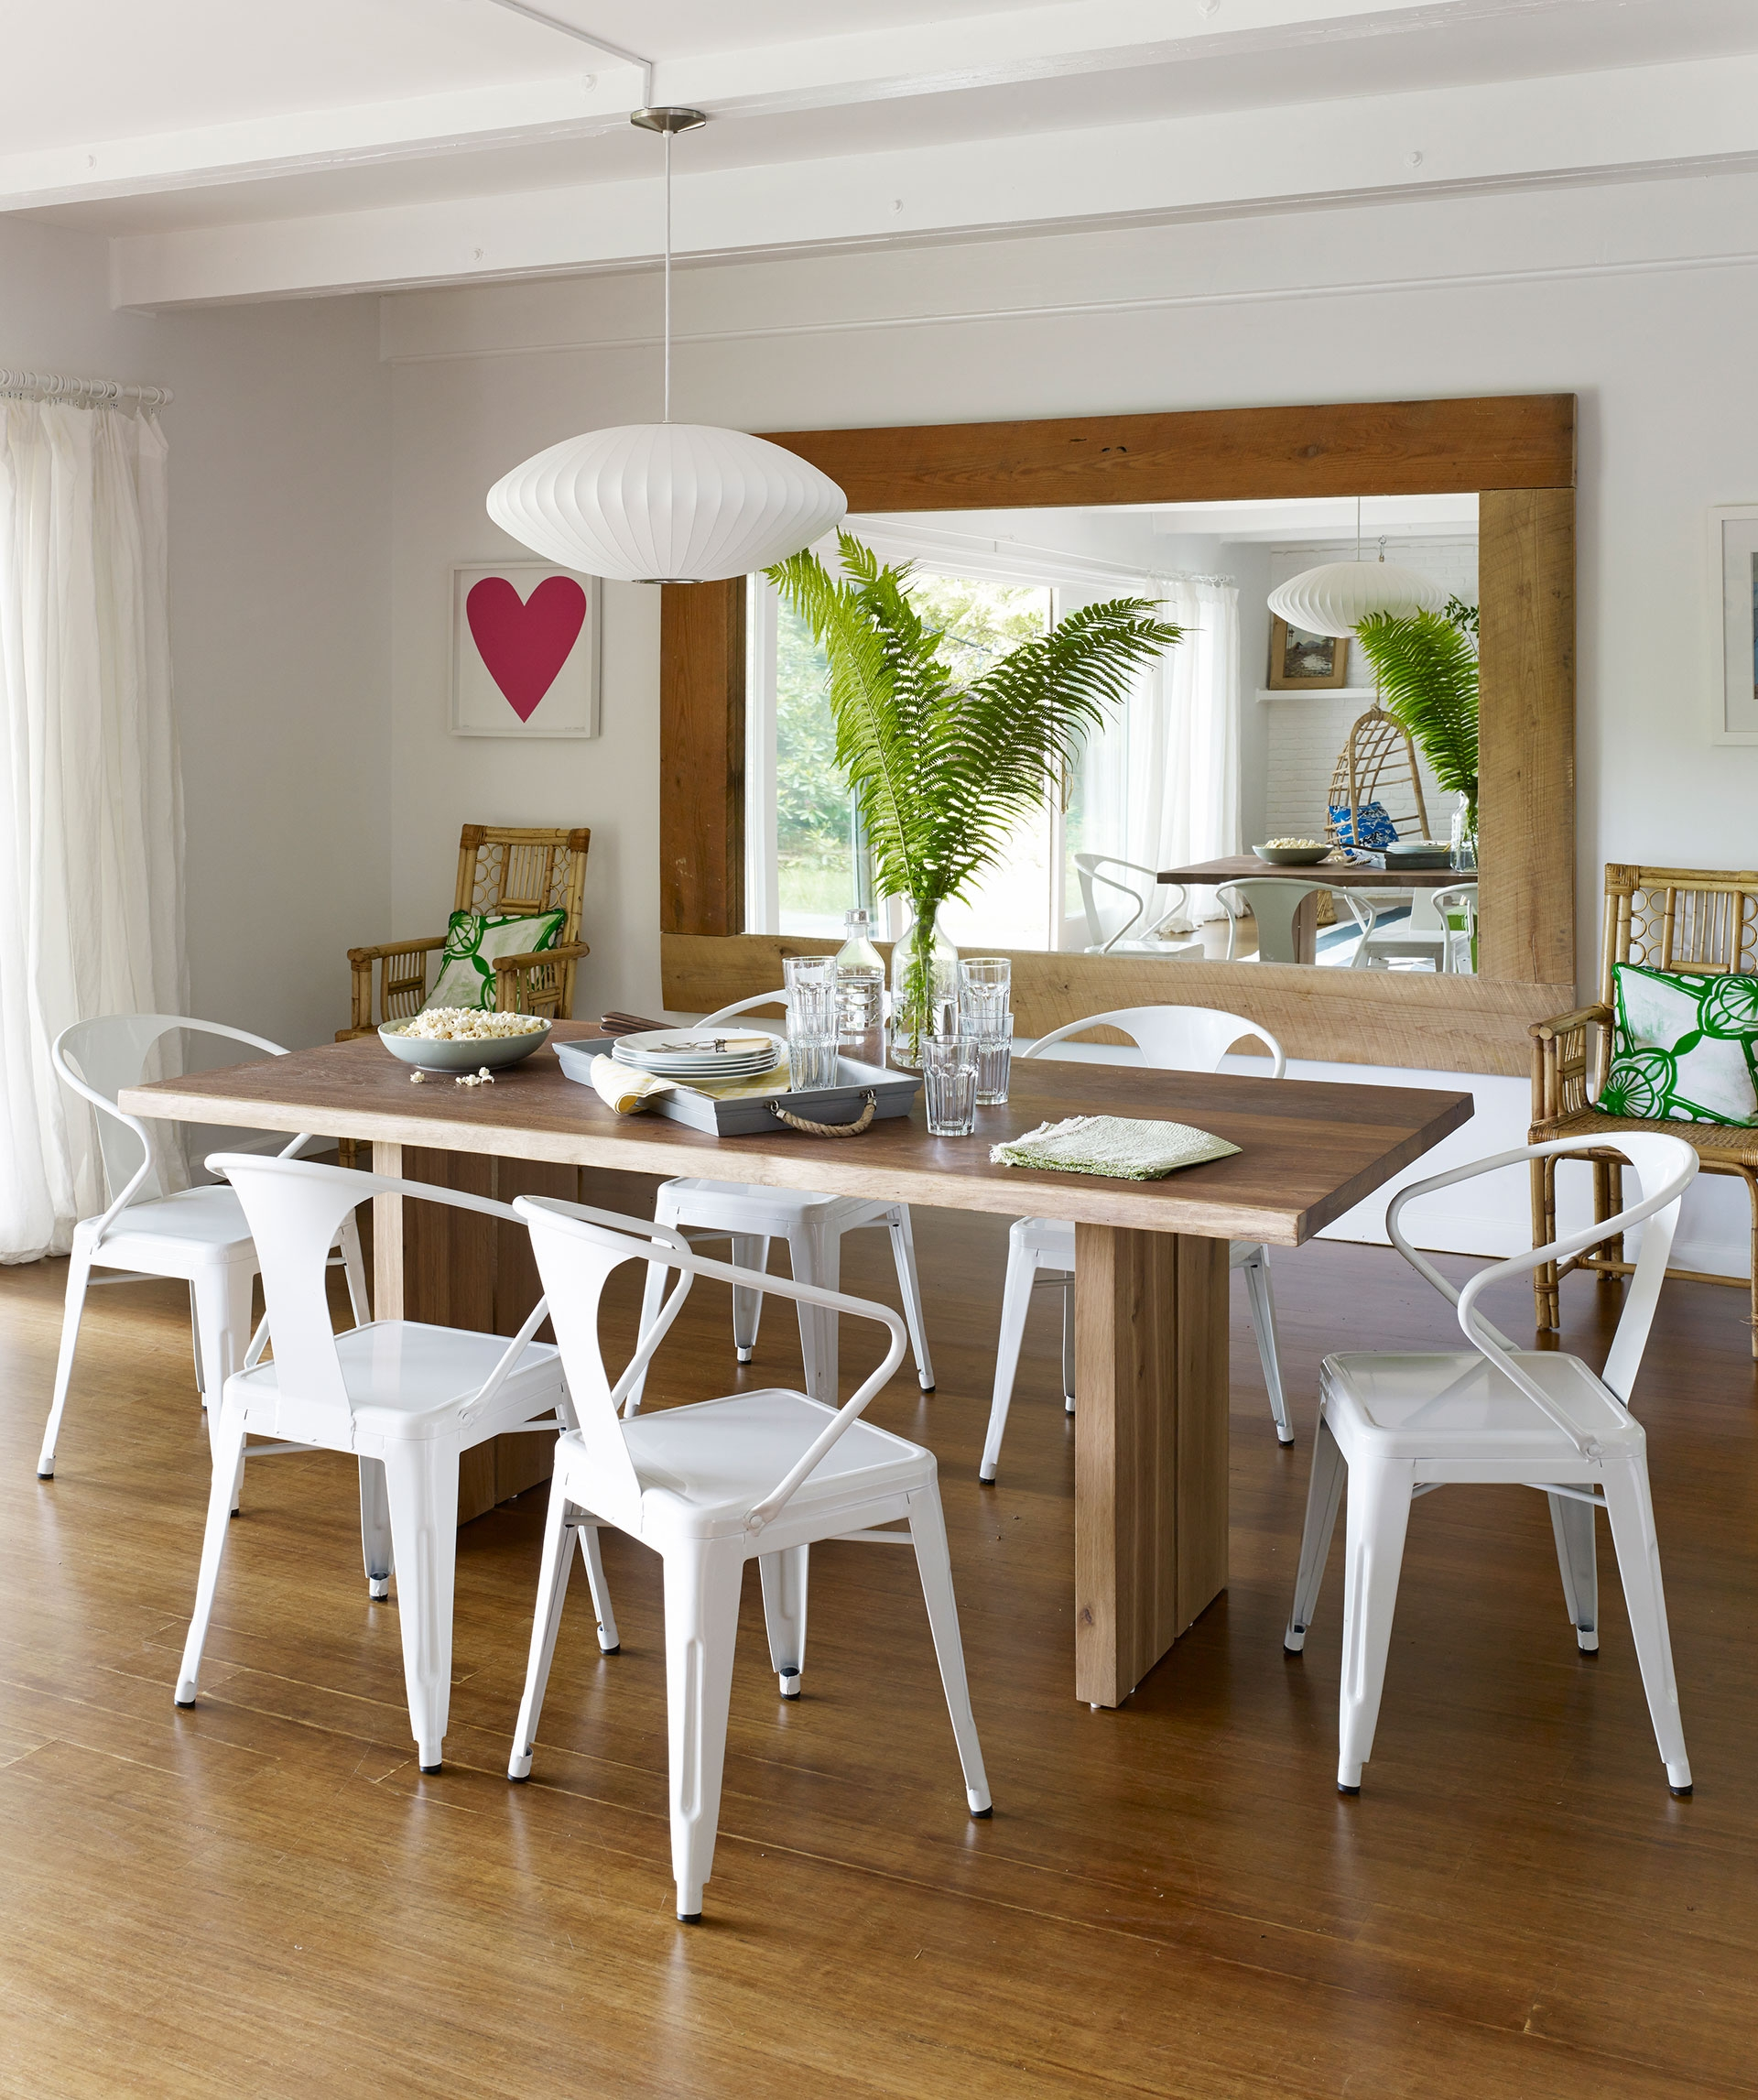 Permalink to Kitchen Dining Room Decorating Ideas